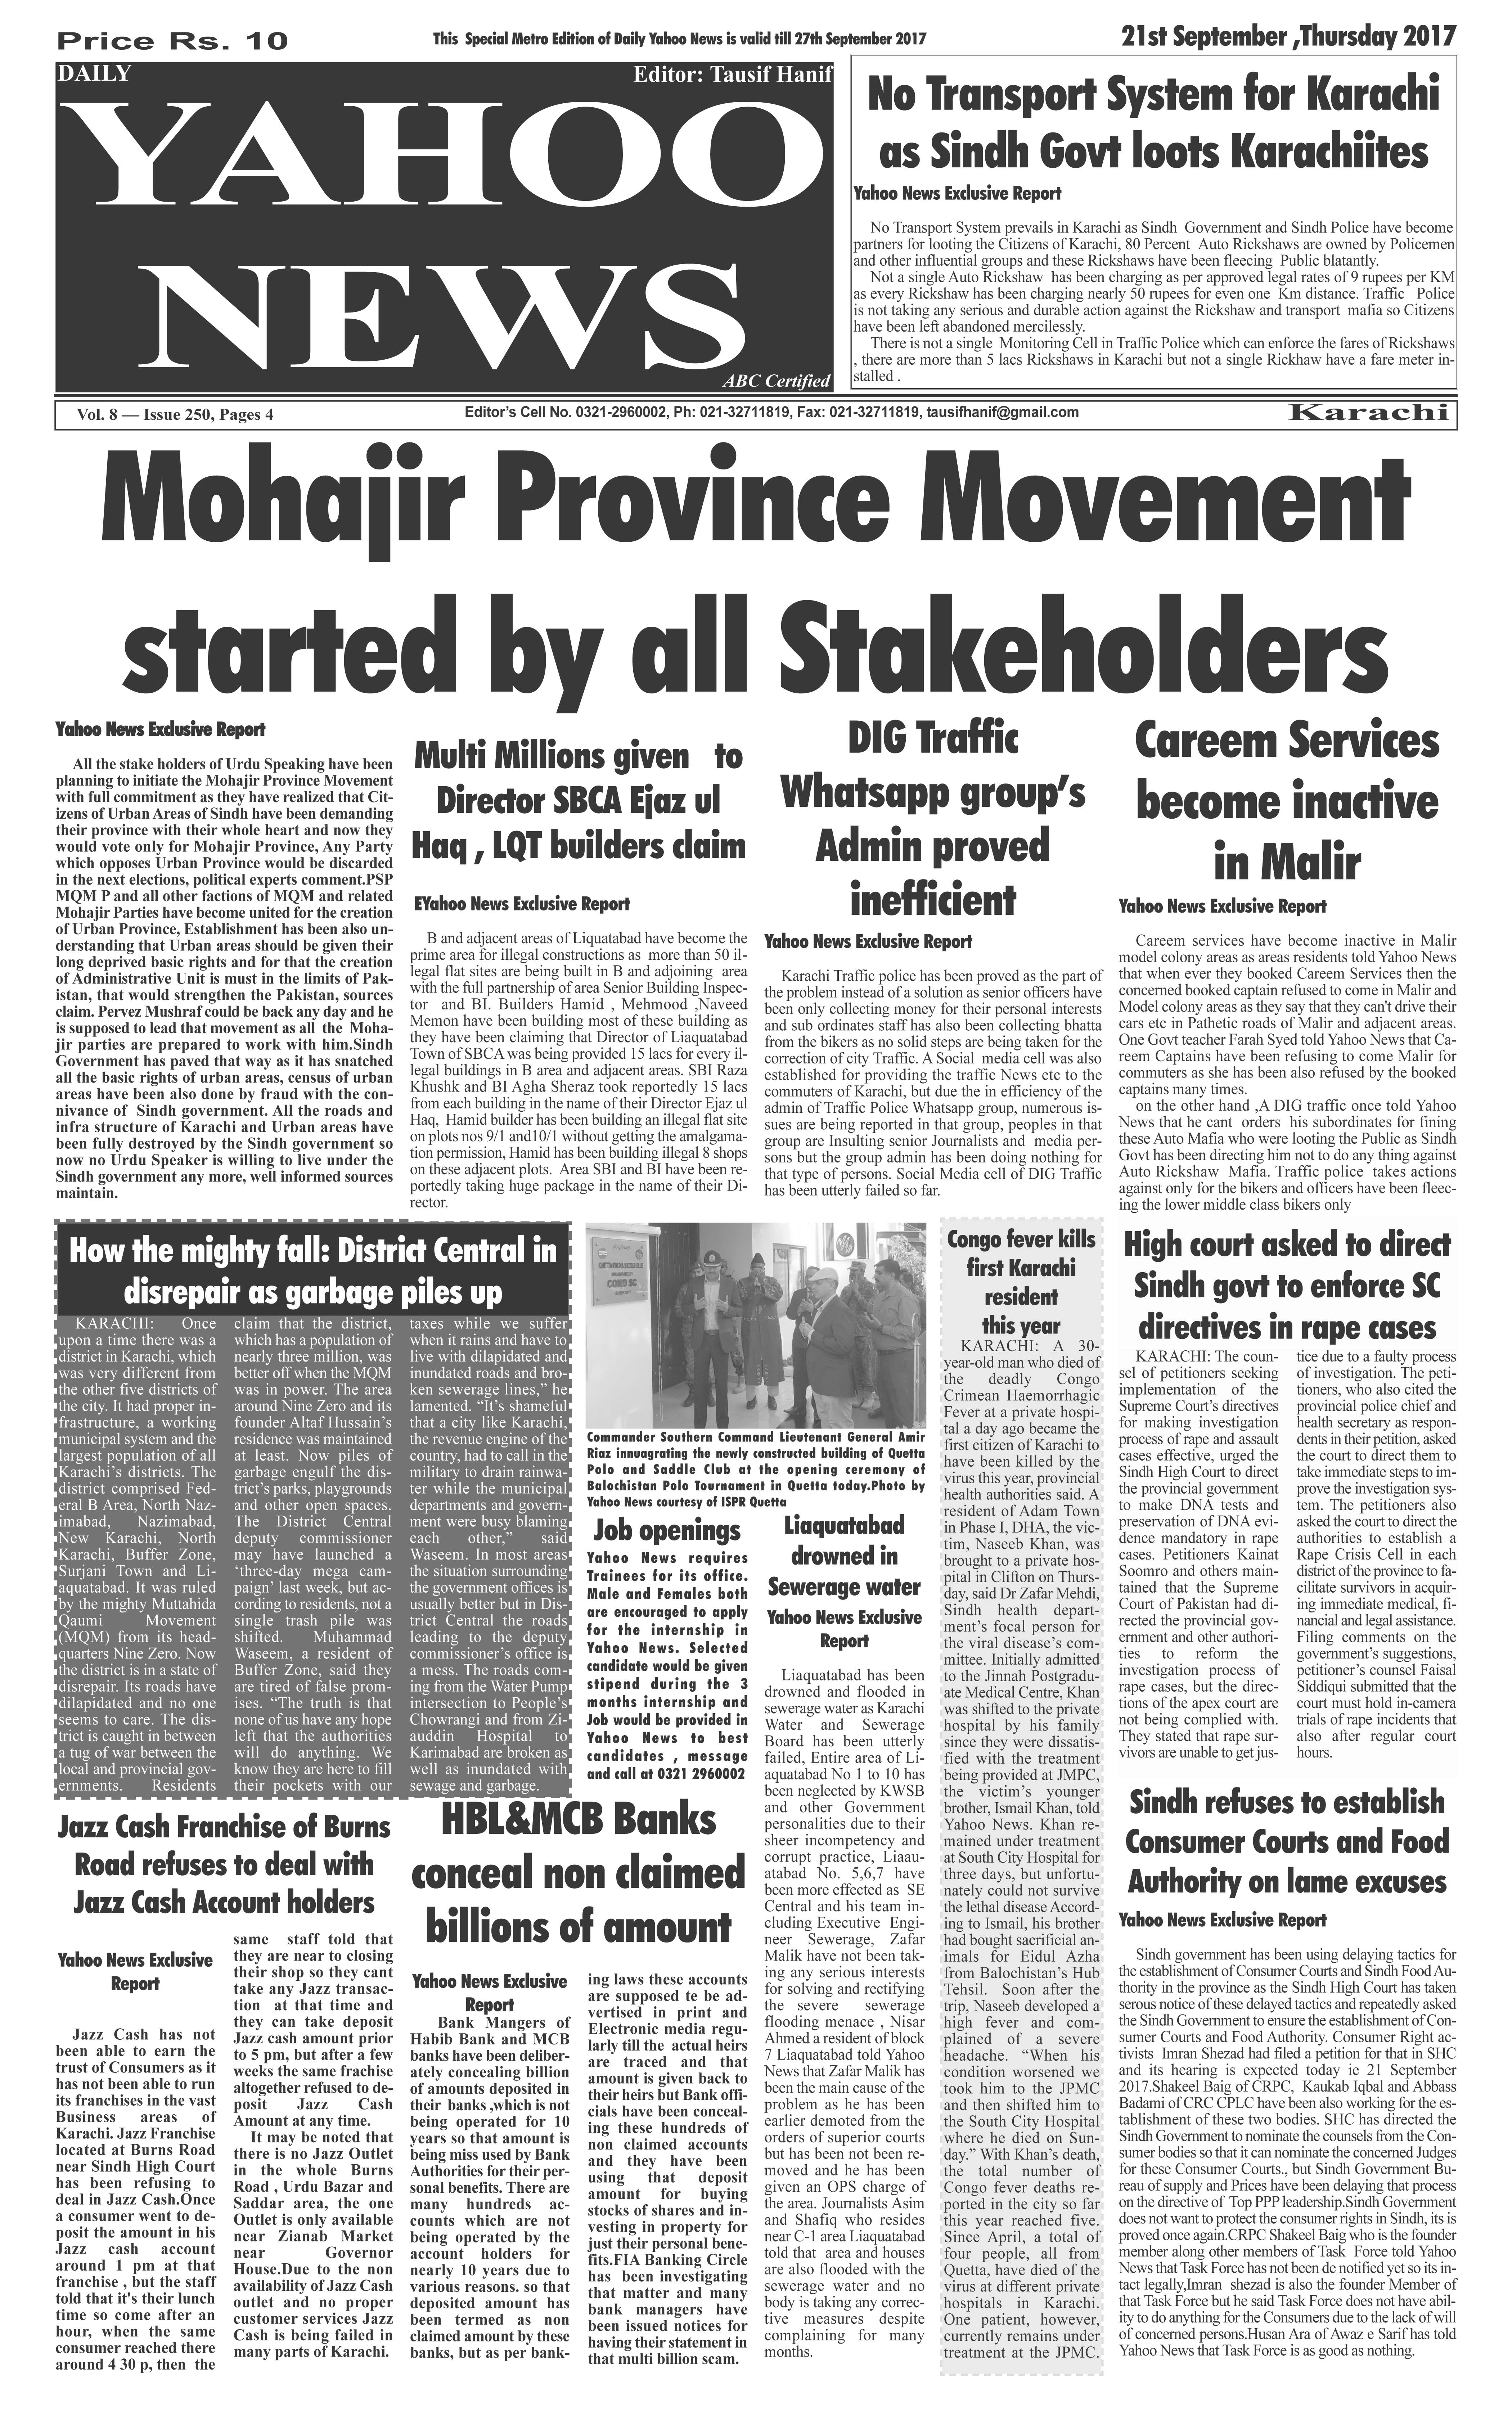 Daily Yahoo News Special Metro Edition dated 21-09-2017